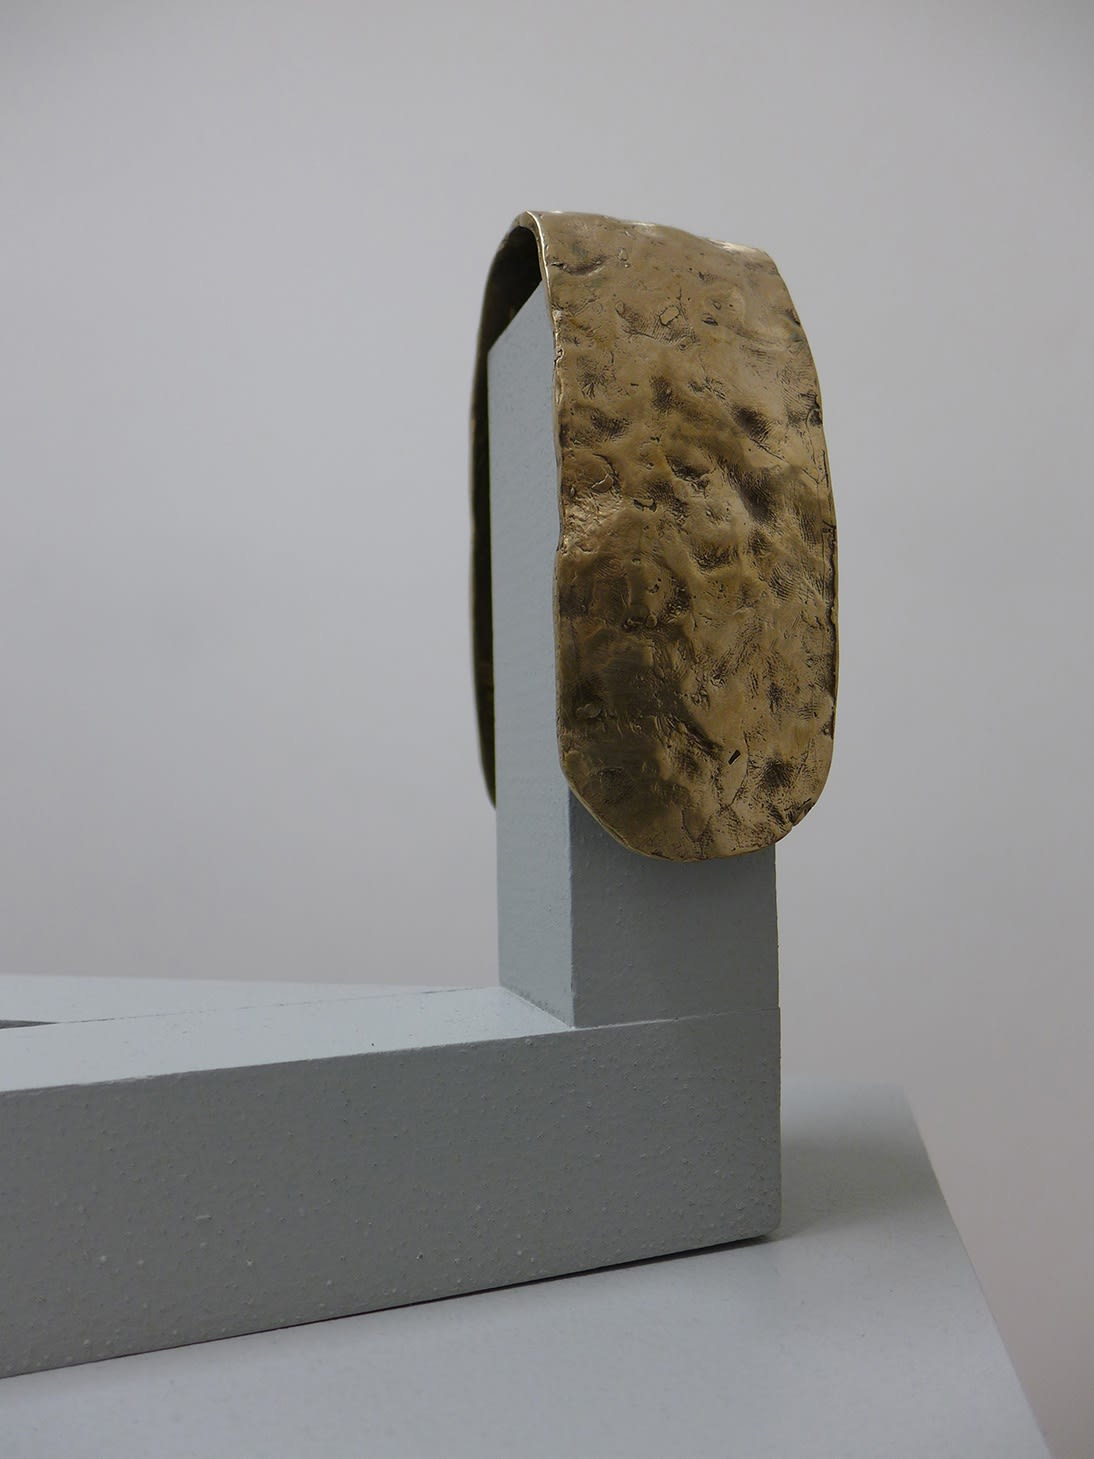 Bianca Hester, performance object #3, 2014